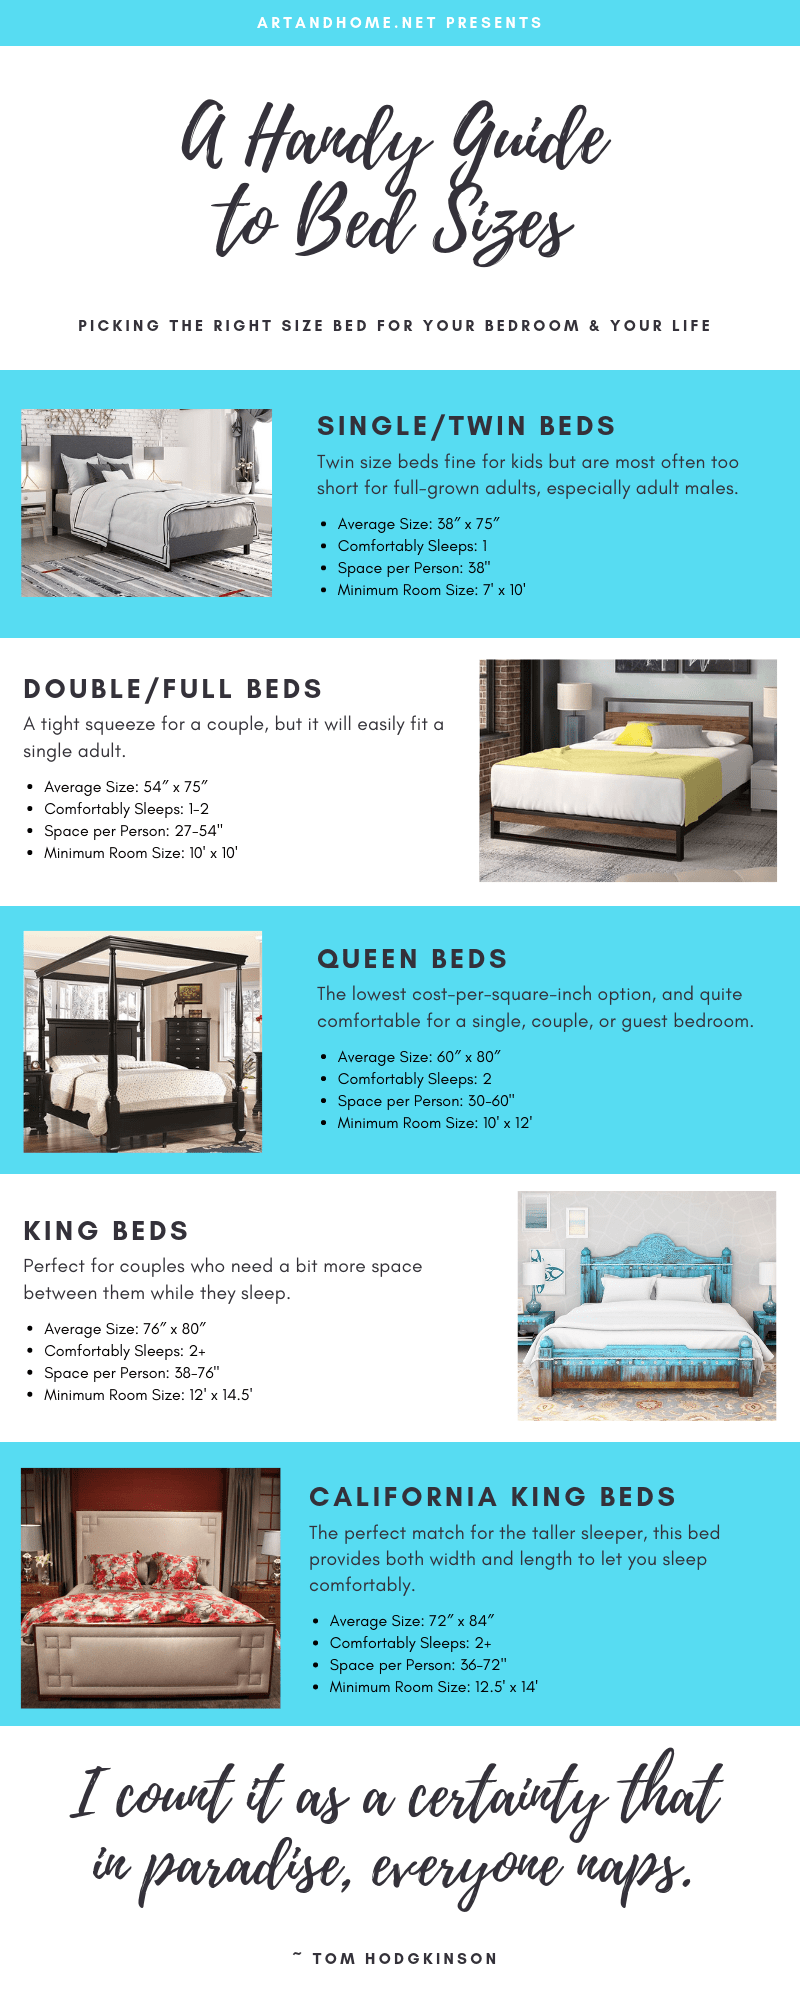 Is a twin size bed right for your bedroom